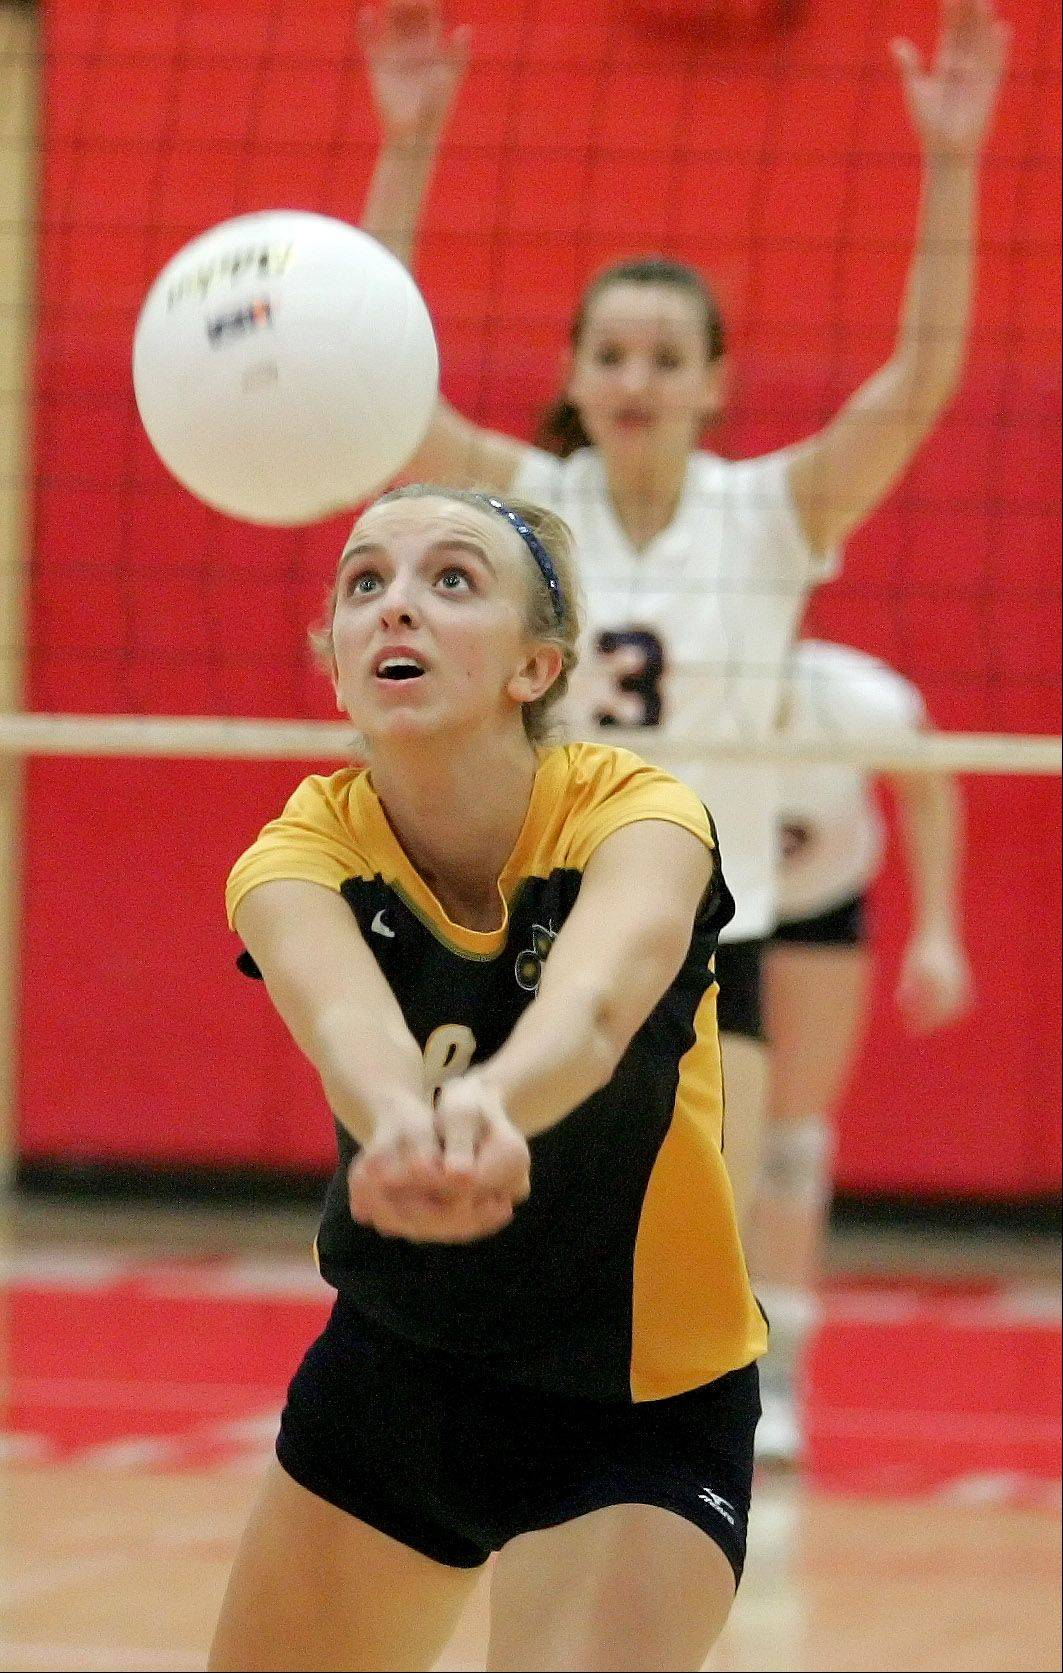 Brooke Antenen of Neuqua Valley bumps the ball in Class 4A girls volleyball regional semifinals against Naperville North at Naperville Central on Monday.